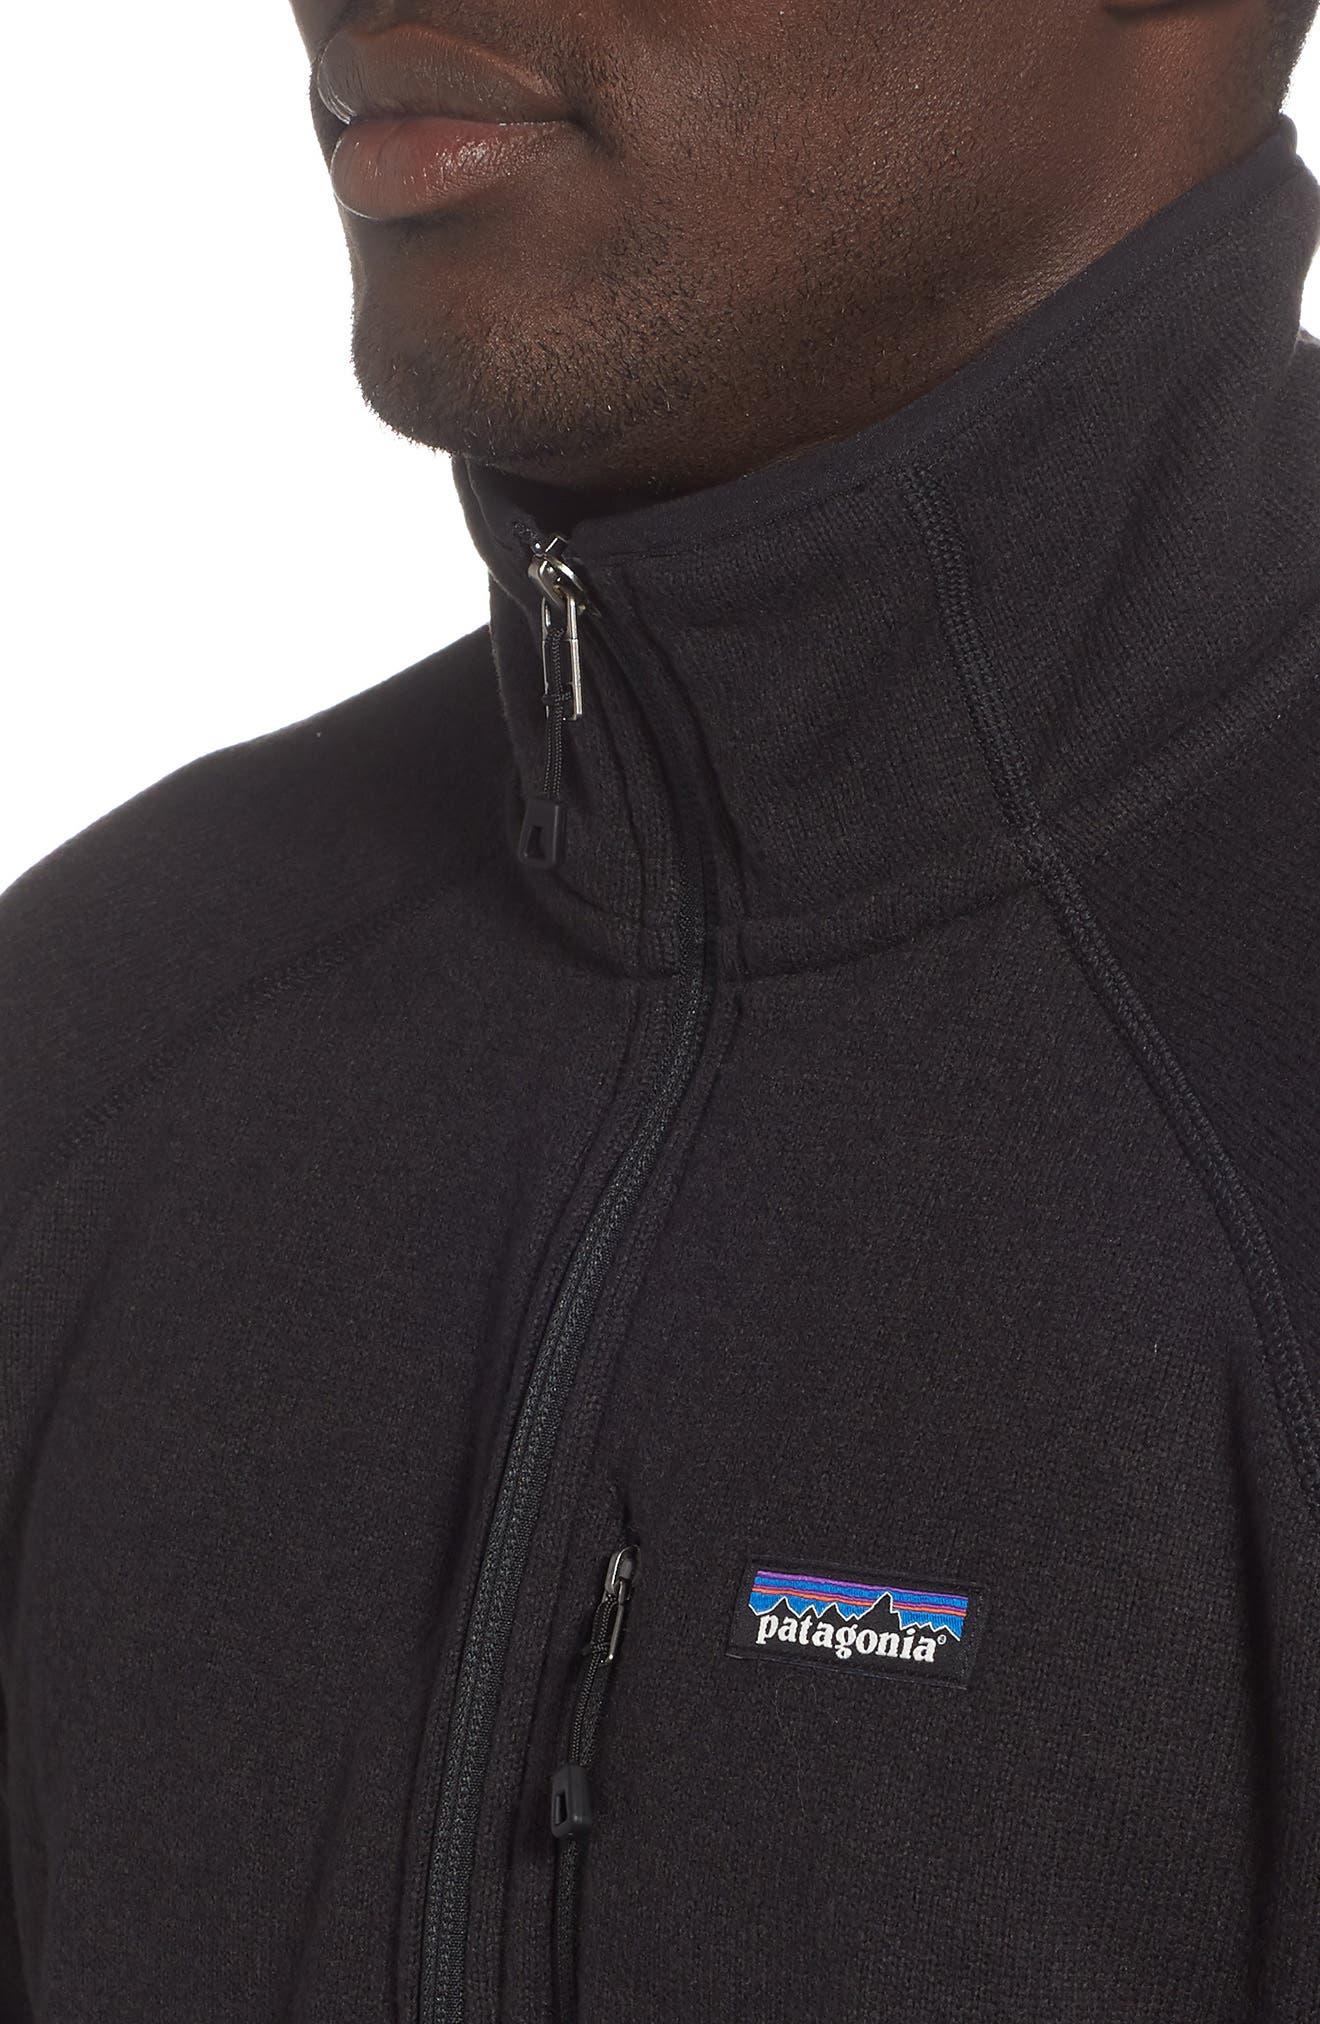 Better Sweater<sup>®</sup> Performance Slim Quarter-Zip Pullover,                             Alternate thumbnail 4, color,                             BLACK